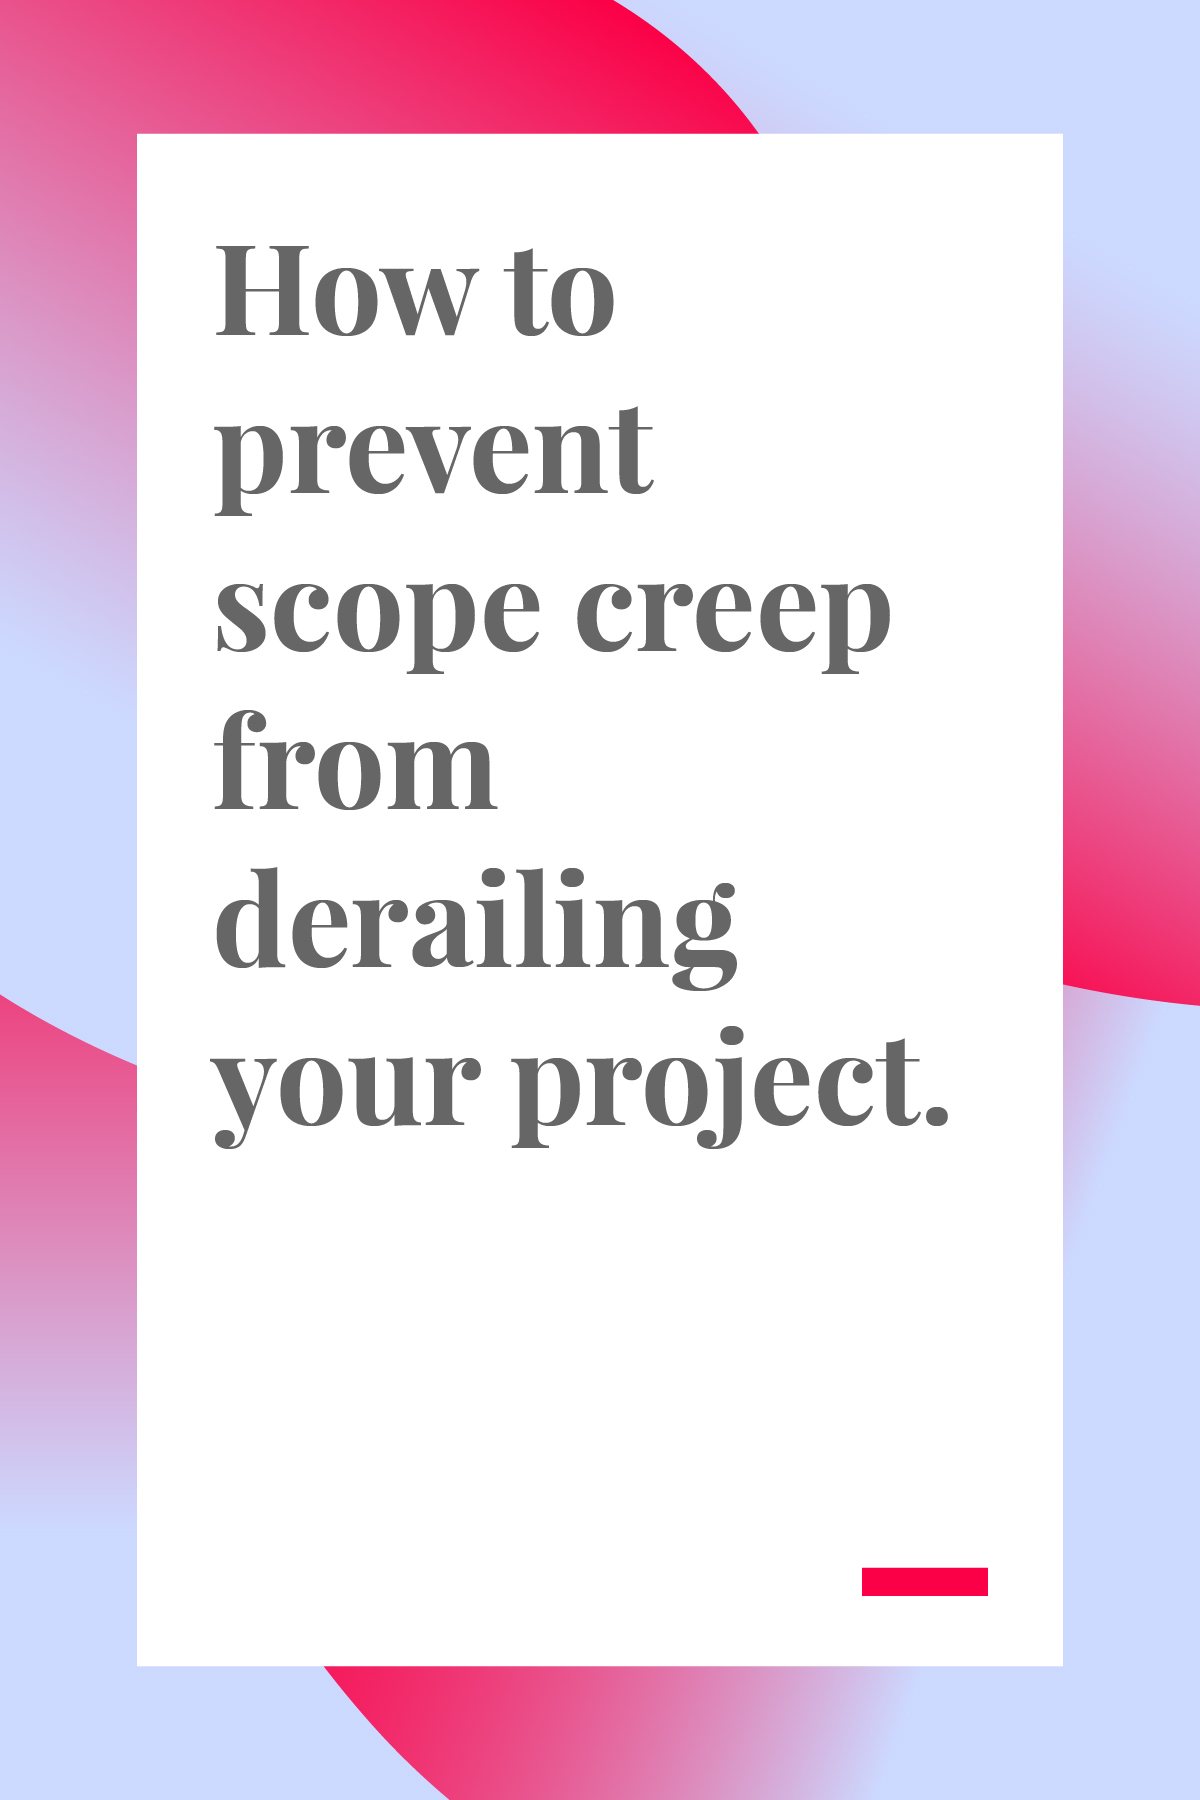 There's nothing worse than scope creep, especially when it threatens to derail your project. If you're a project manager or team lead, this article is mandatory reading! #projectmanager #projectmanagement